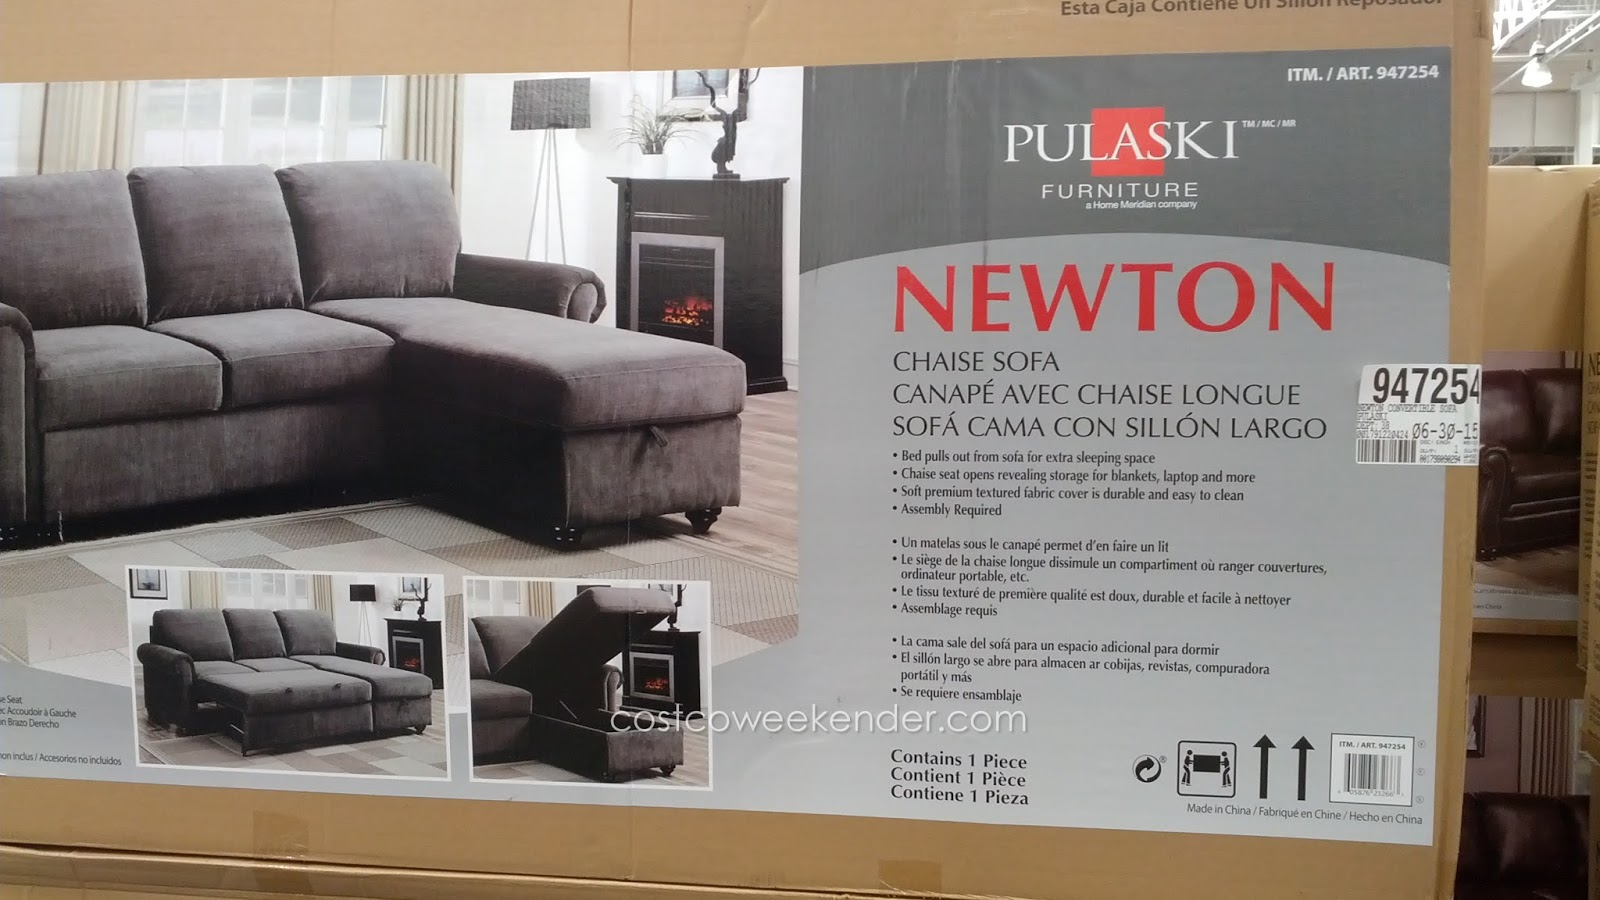 Relax In Your Home With The Ski Newton Convertible Chaise Sofa